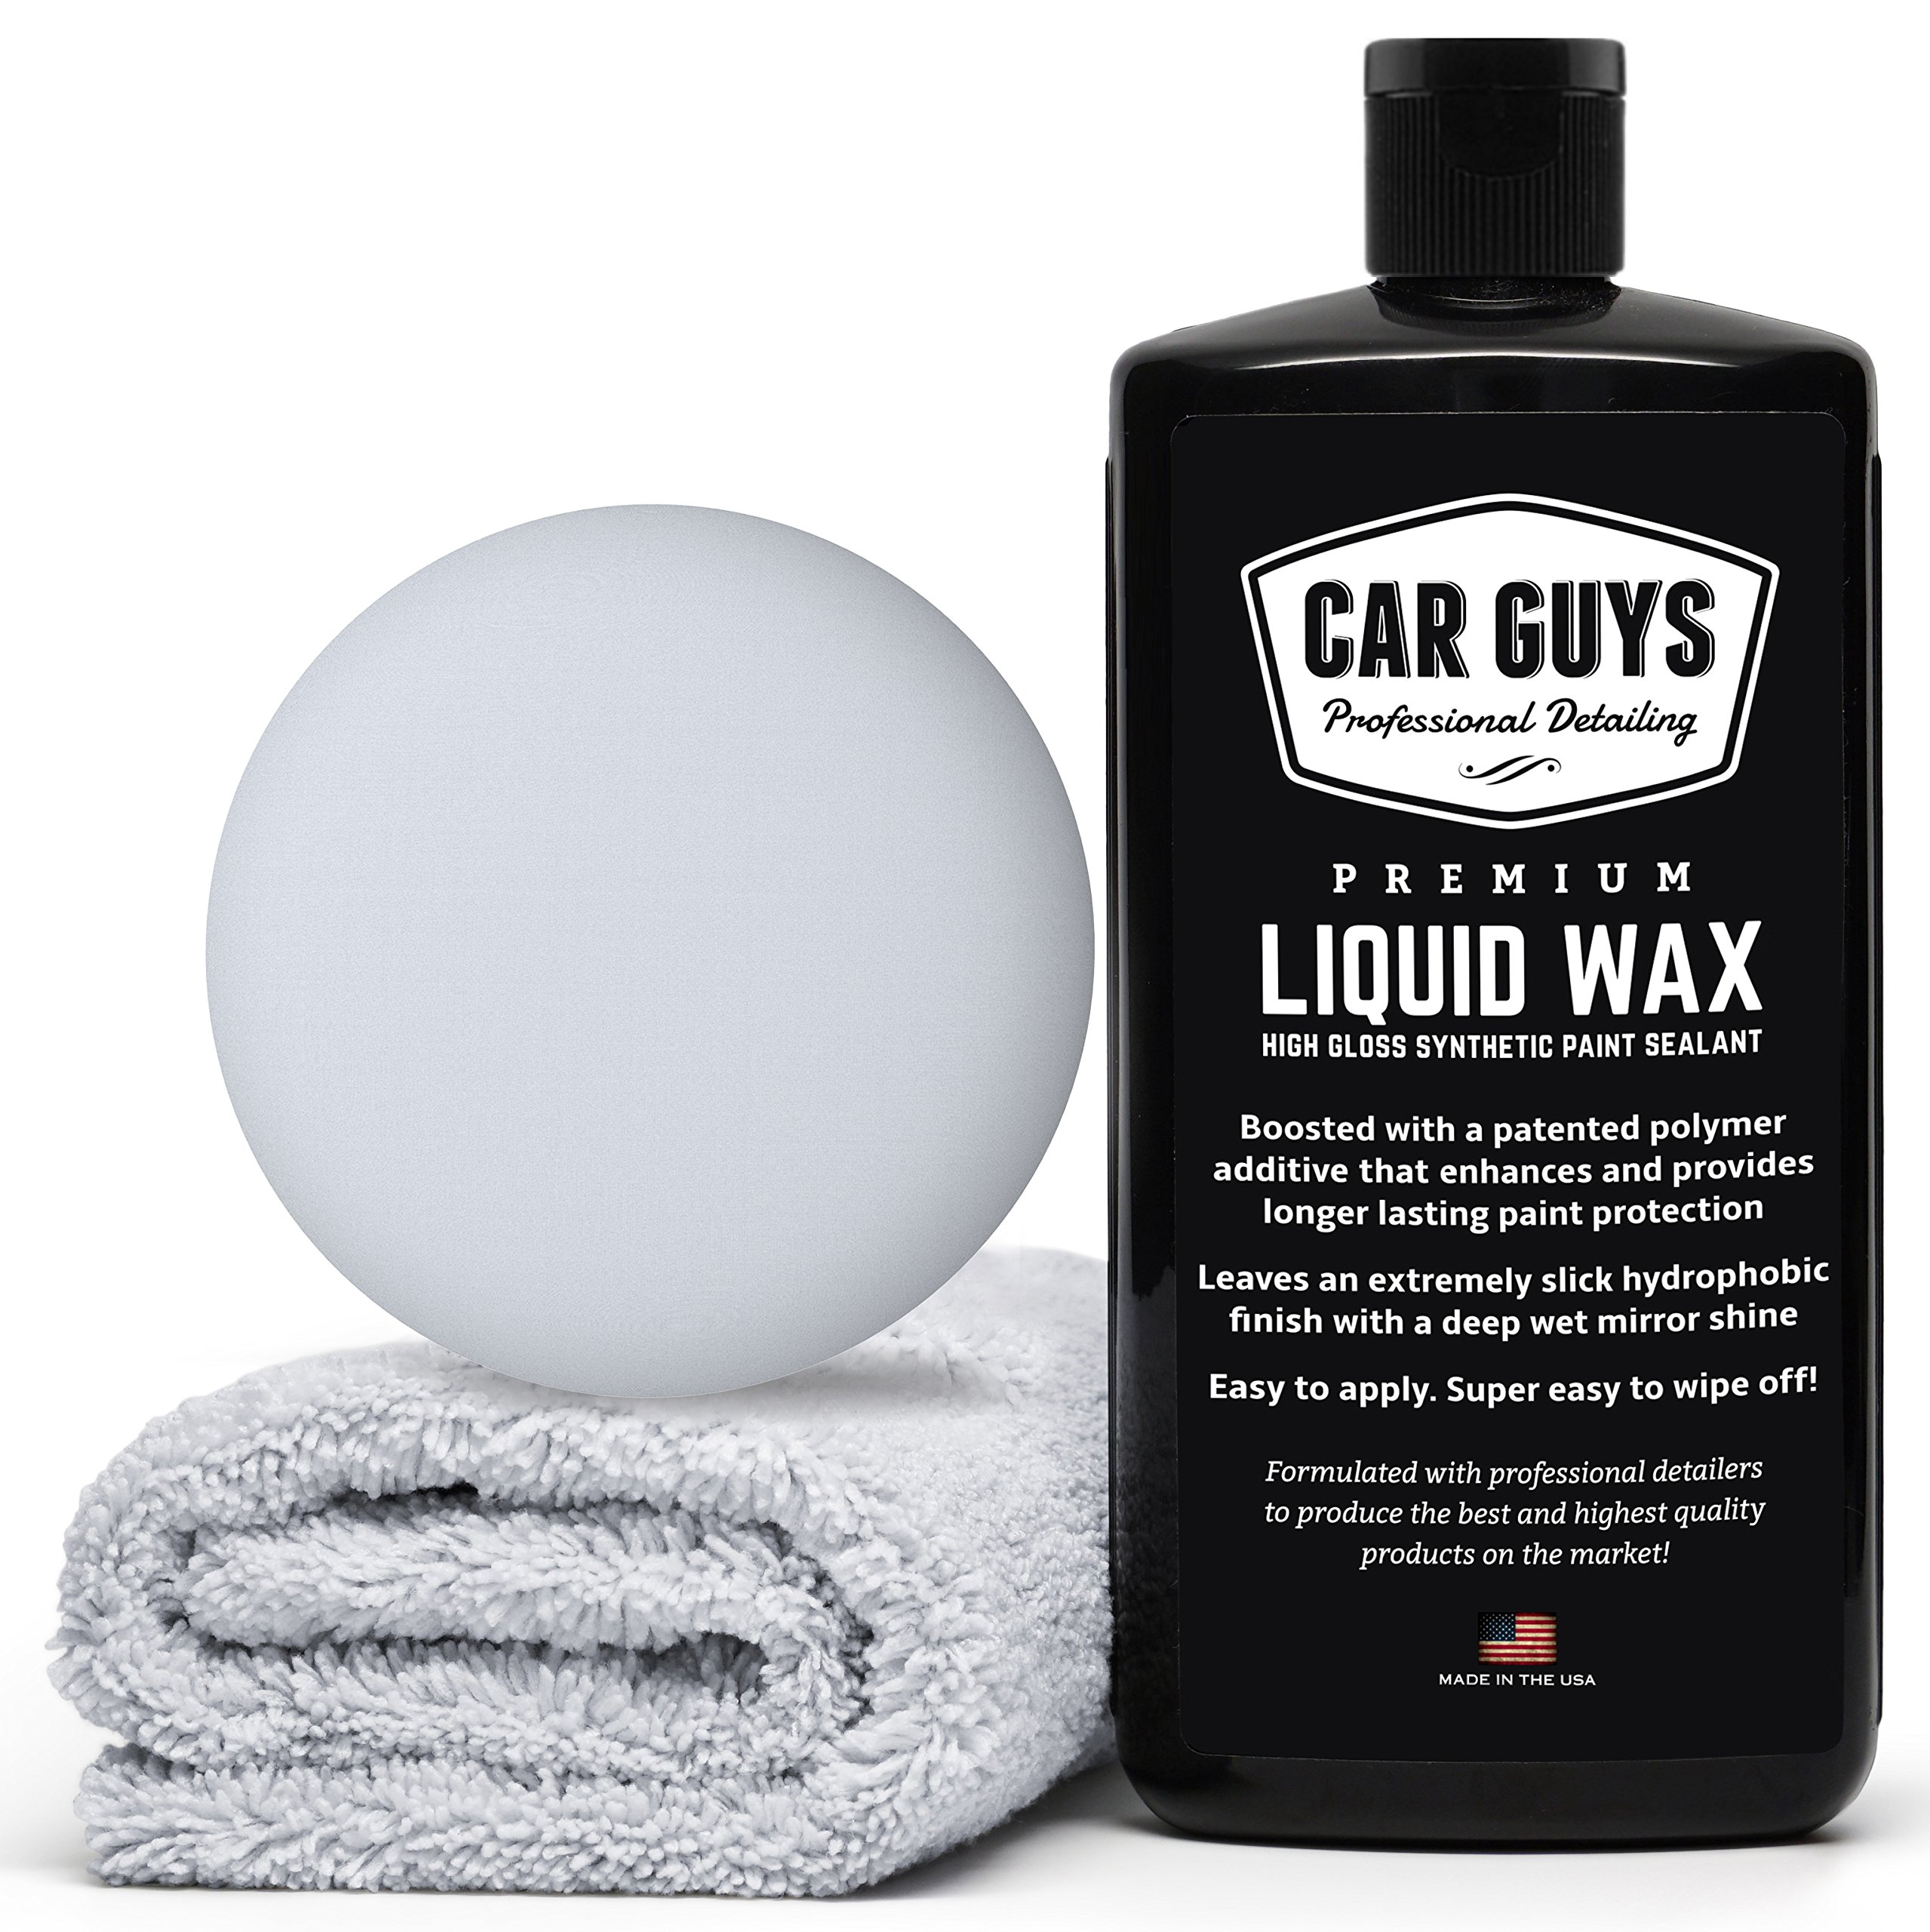 CarGuys Liquid Wax Ultimate Protection